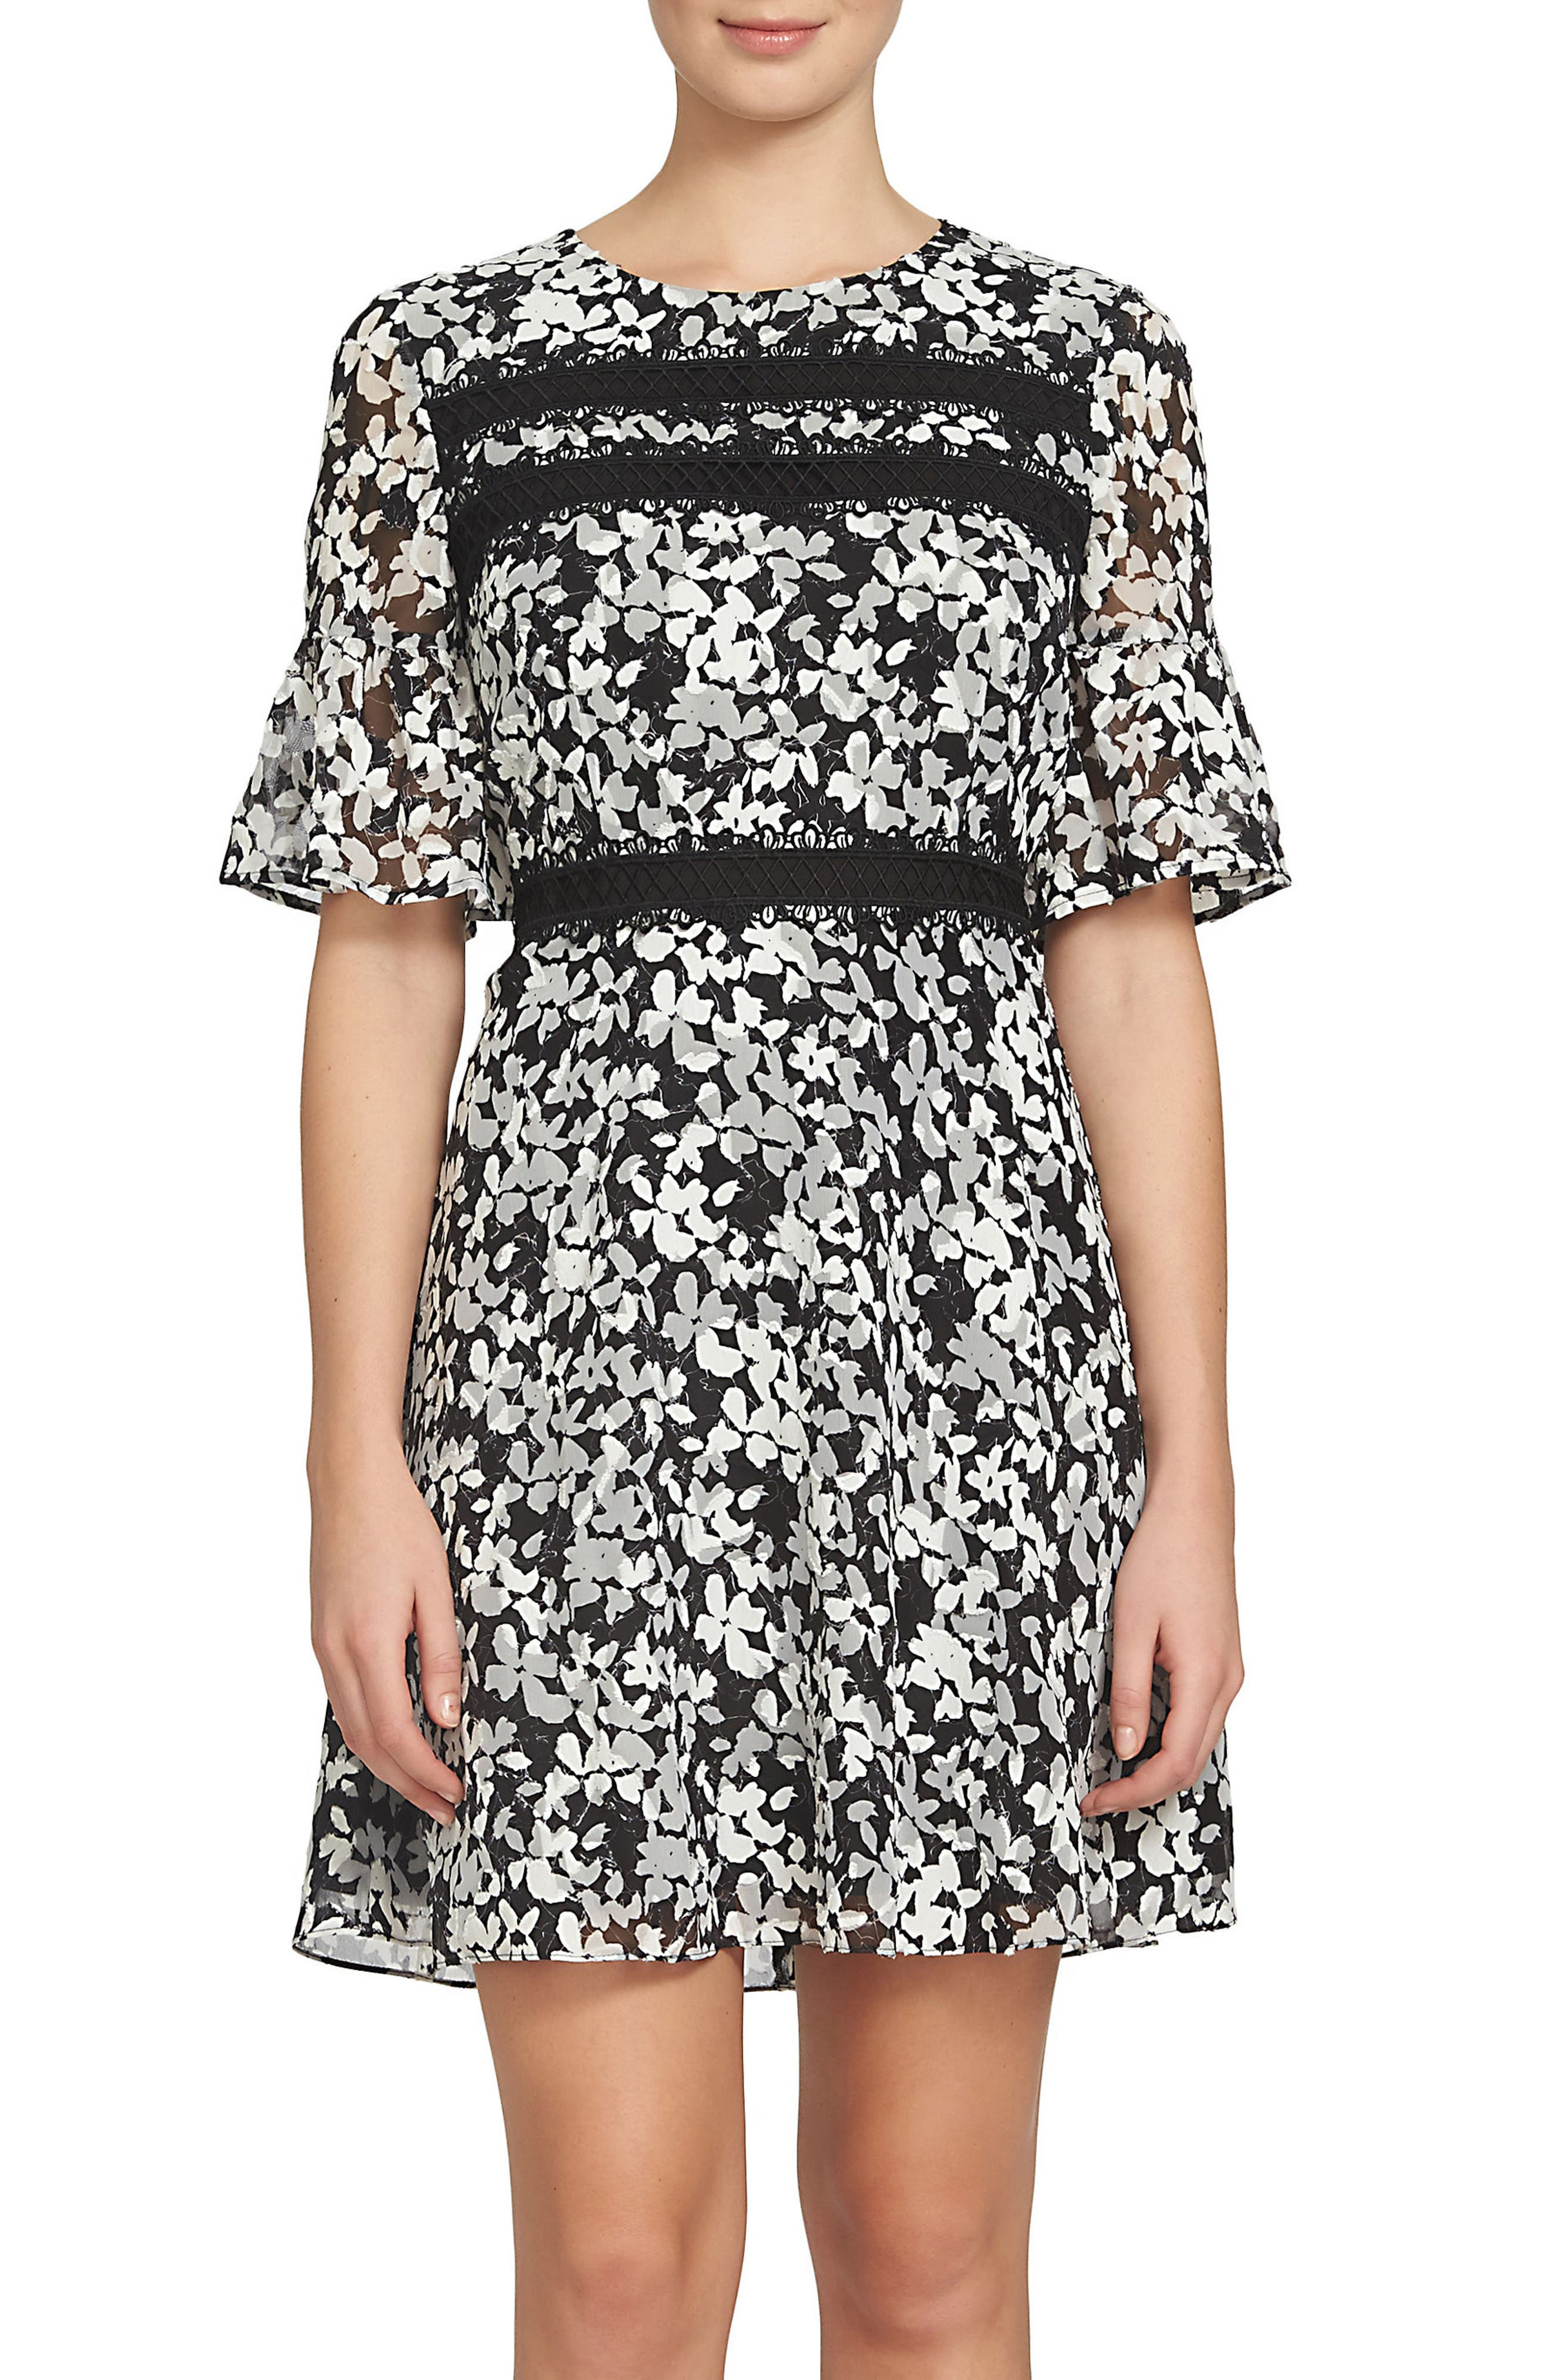 Alternate Image 1 Selected - Cece Alayna Floral Fit & Flare Dress